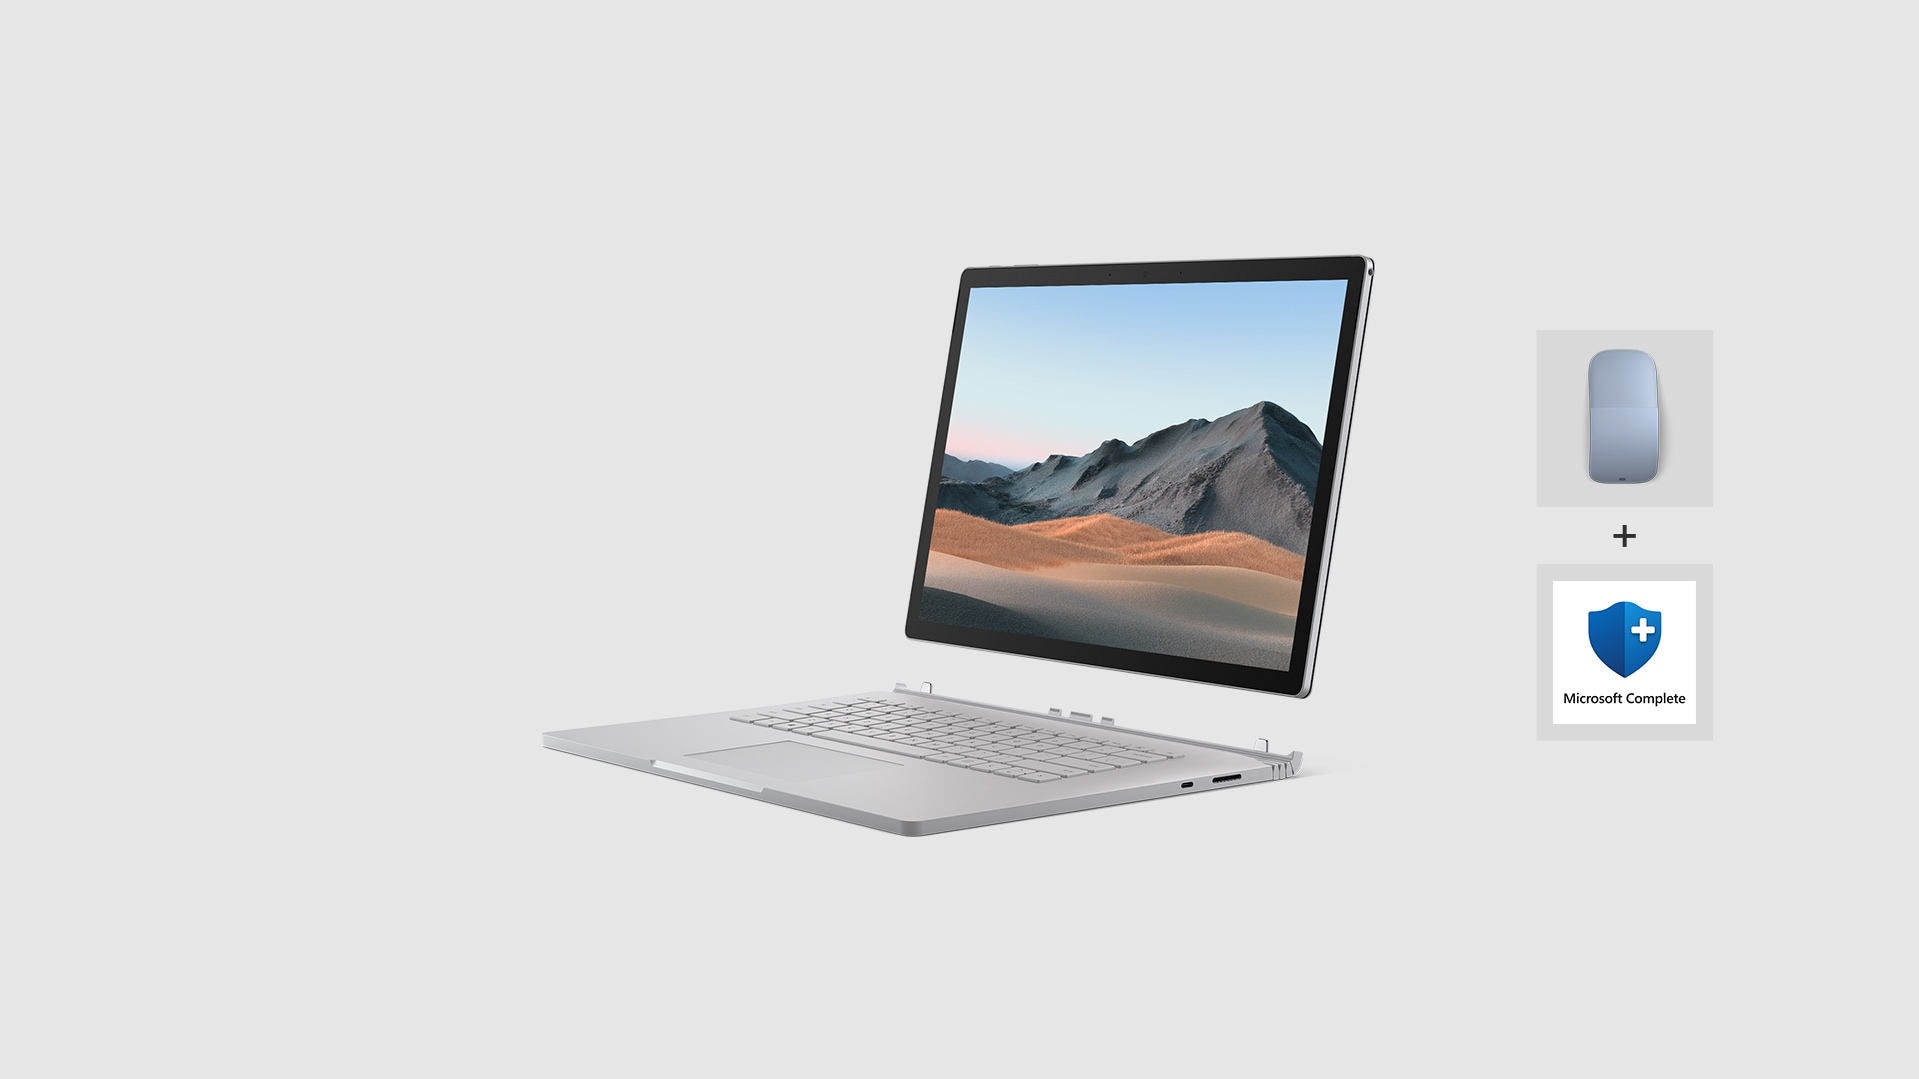 Surface Book 3 with Surface Arc Mouse and Microsoft Complete